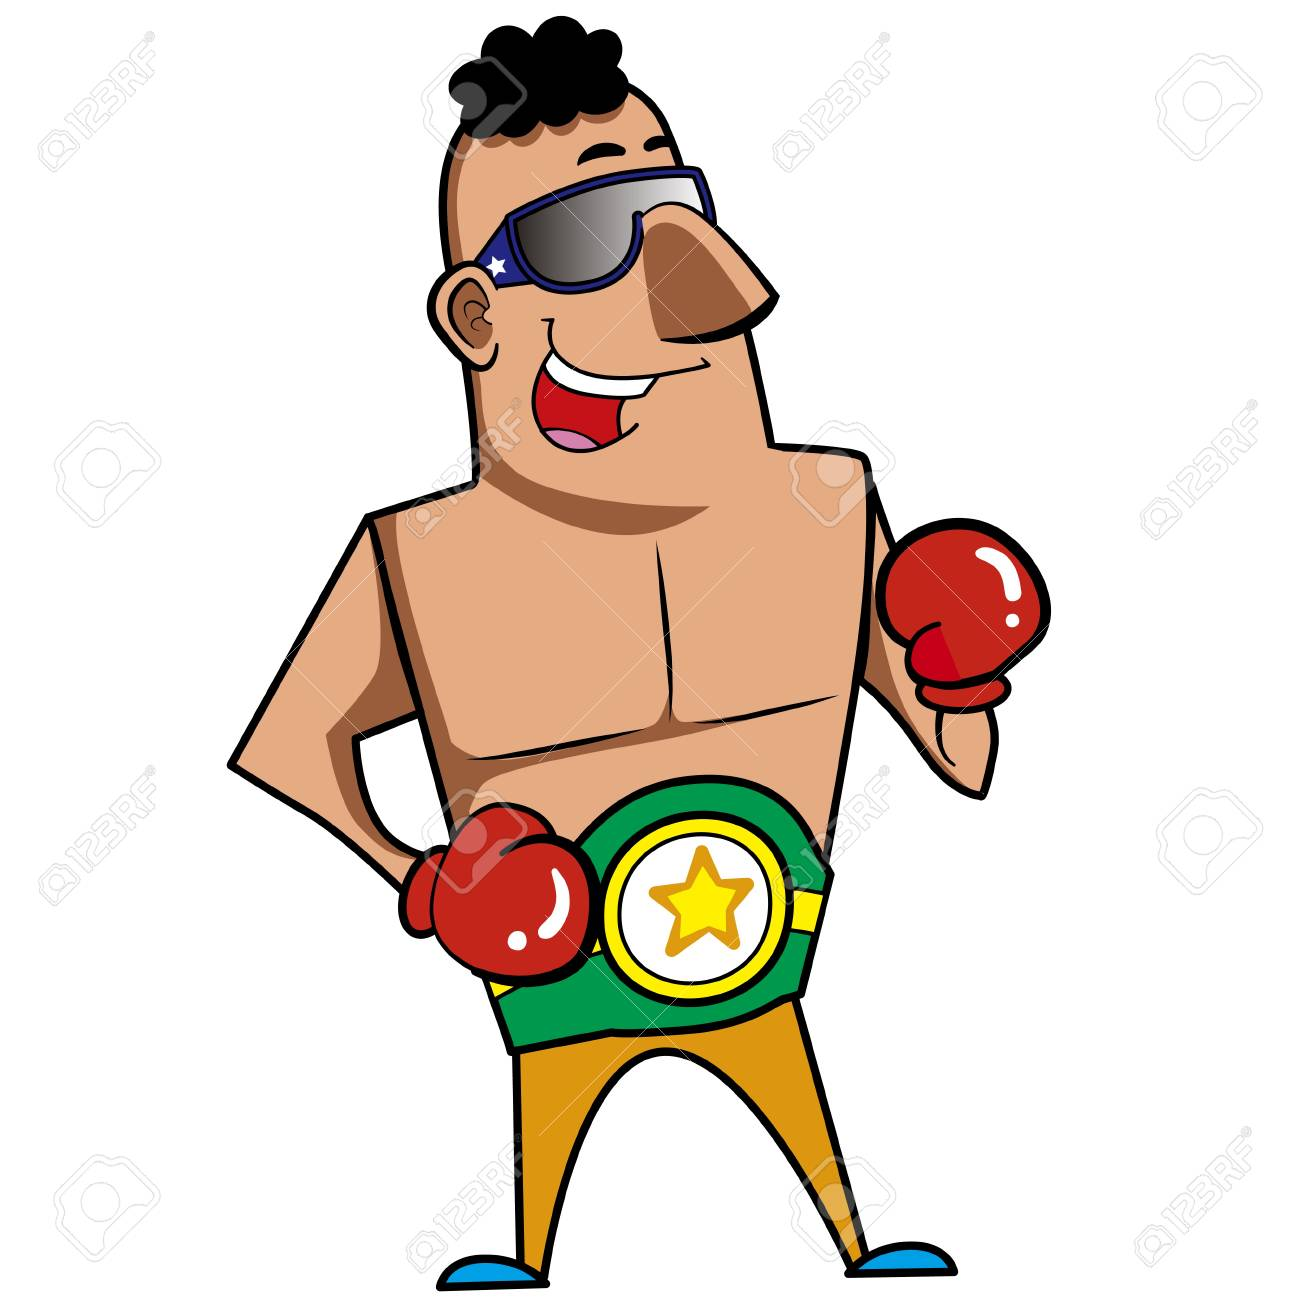 Cartoon boxer with boxing gloves vector illustration Stock Vector - 18376546